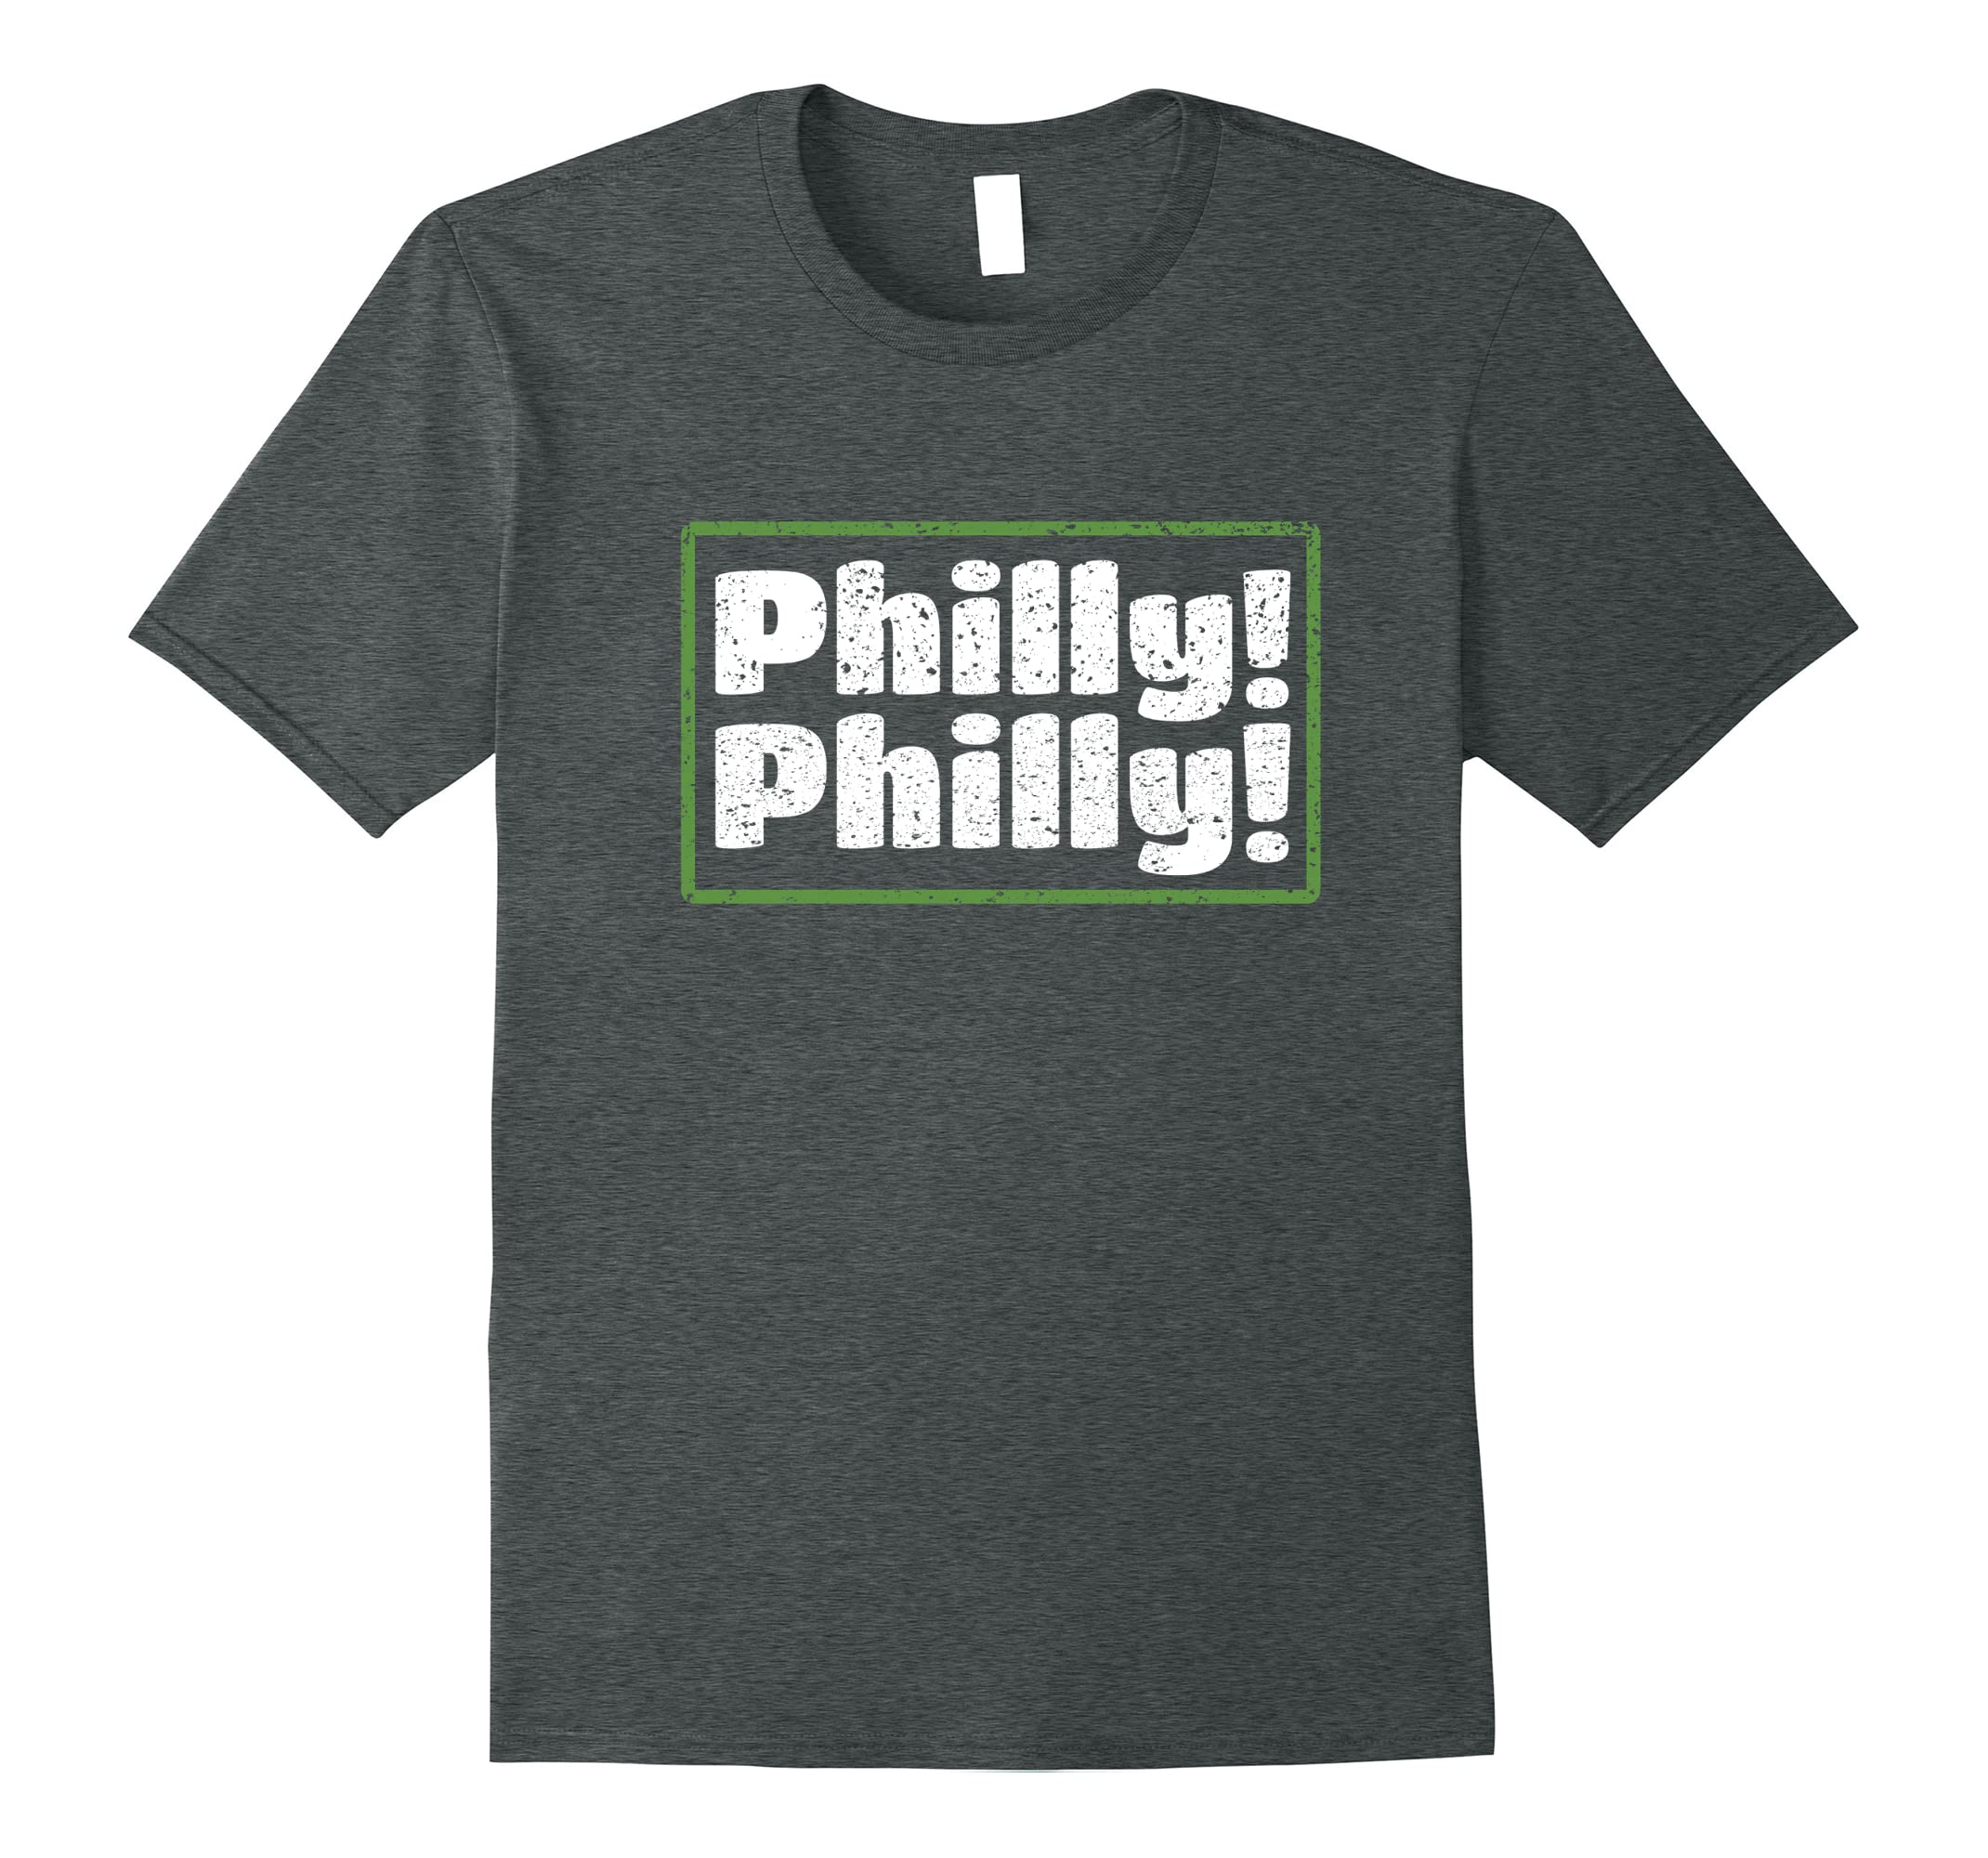 Philly! Philly! T-Shirt Vintage Design-ah my shirt one gift